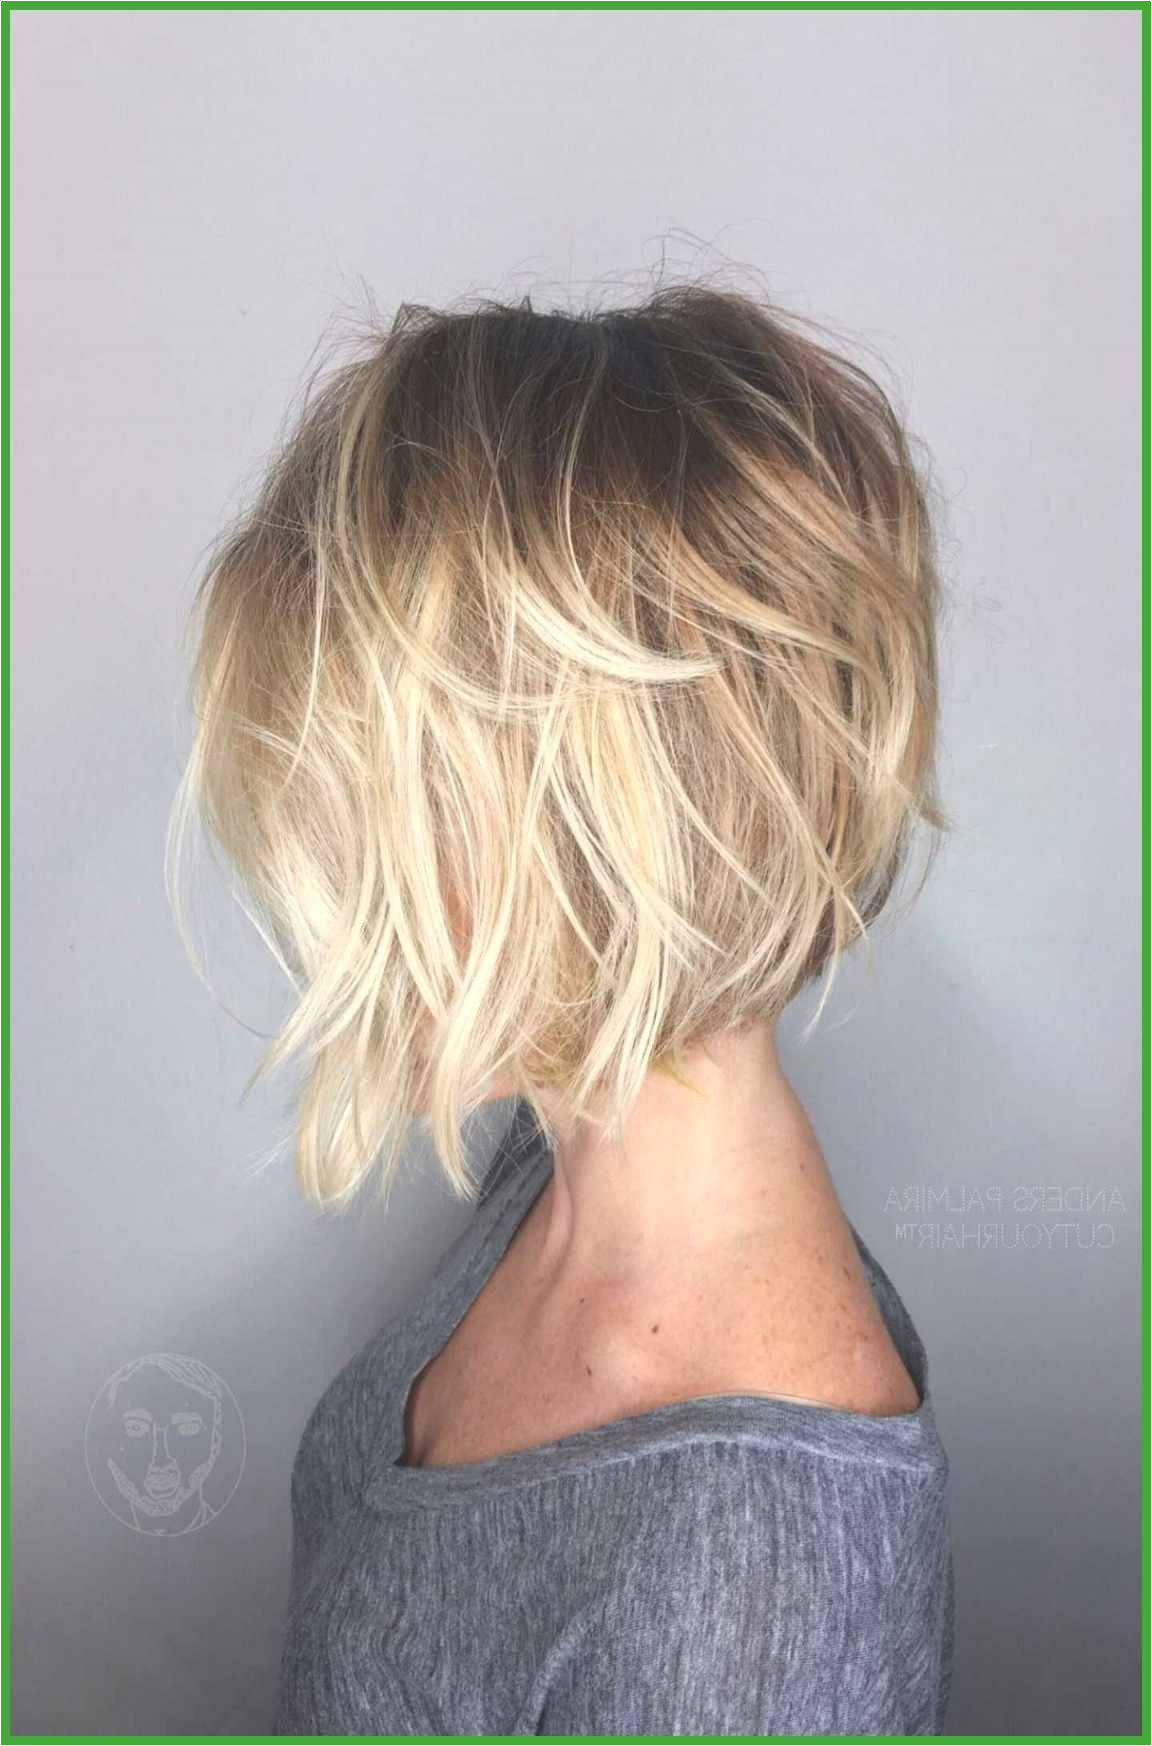 Gallery of Easy Hairstyles For Short Hair To Do At Home New Short Cuts For Curly Hair Short Haircut For Thick Hair 0d